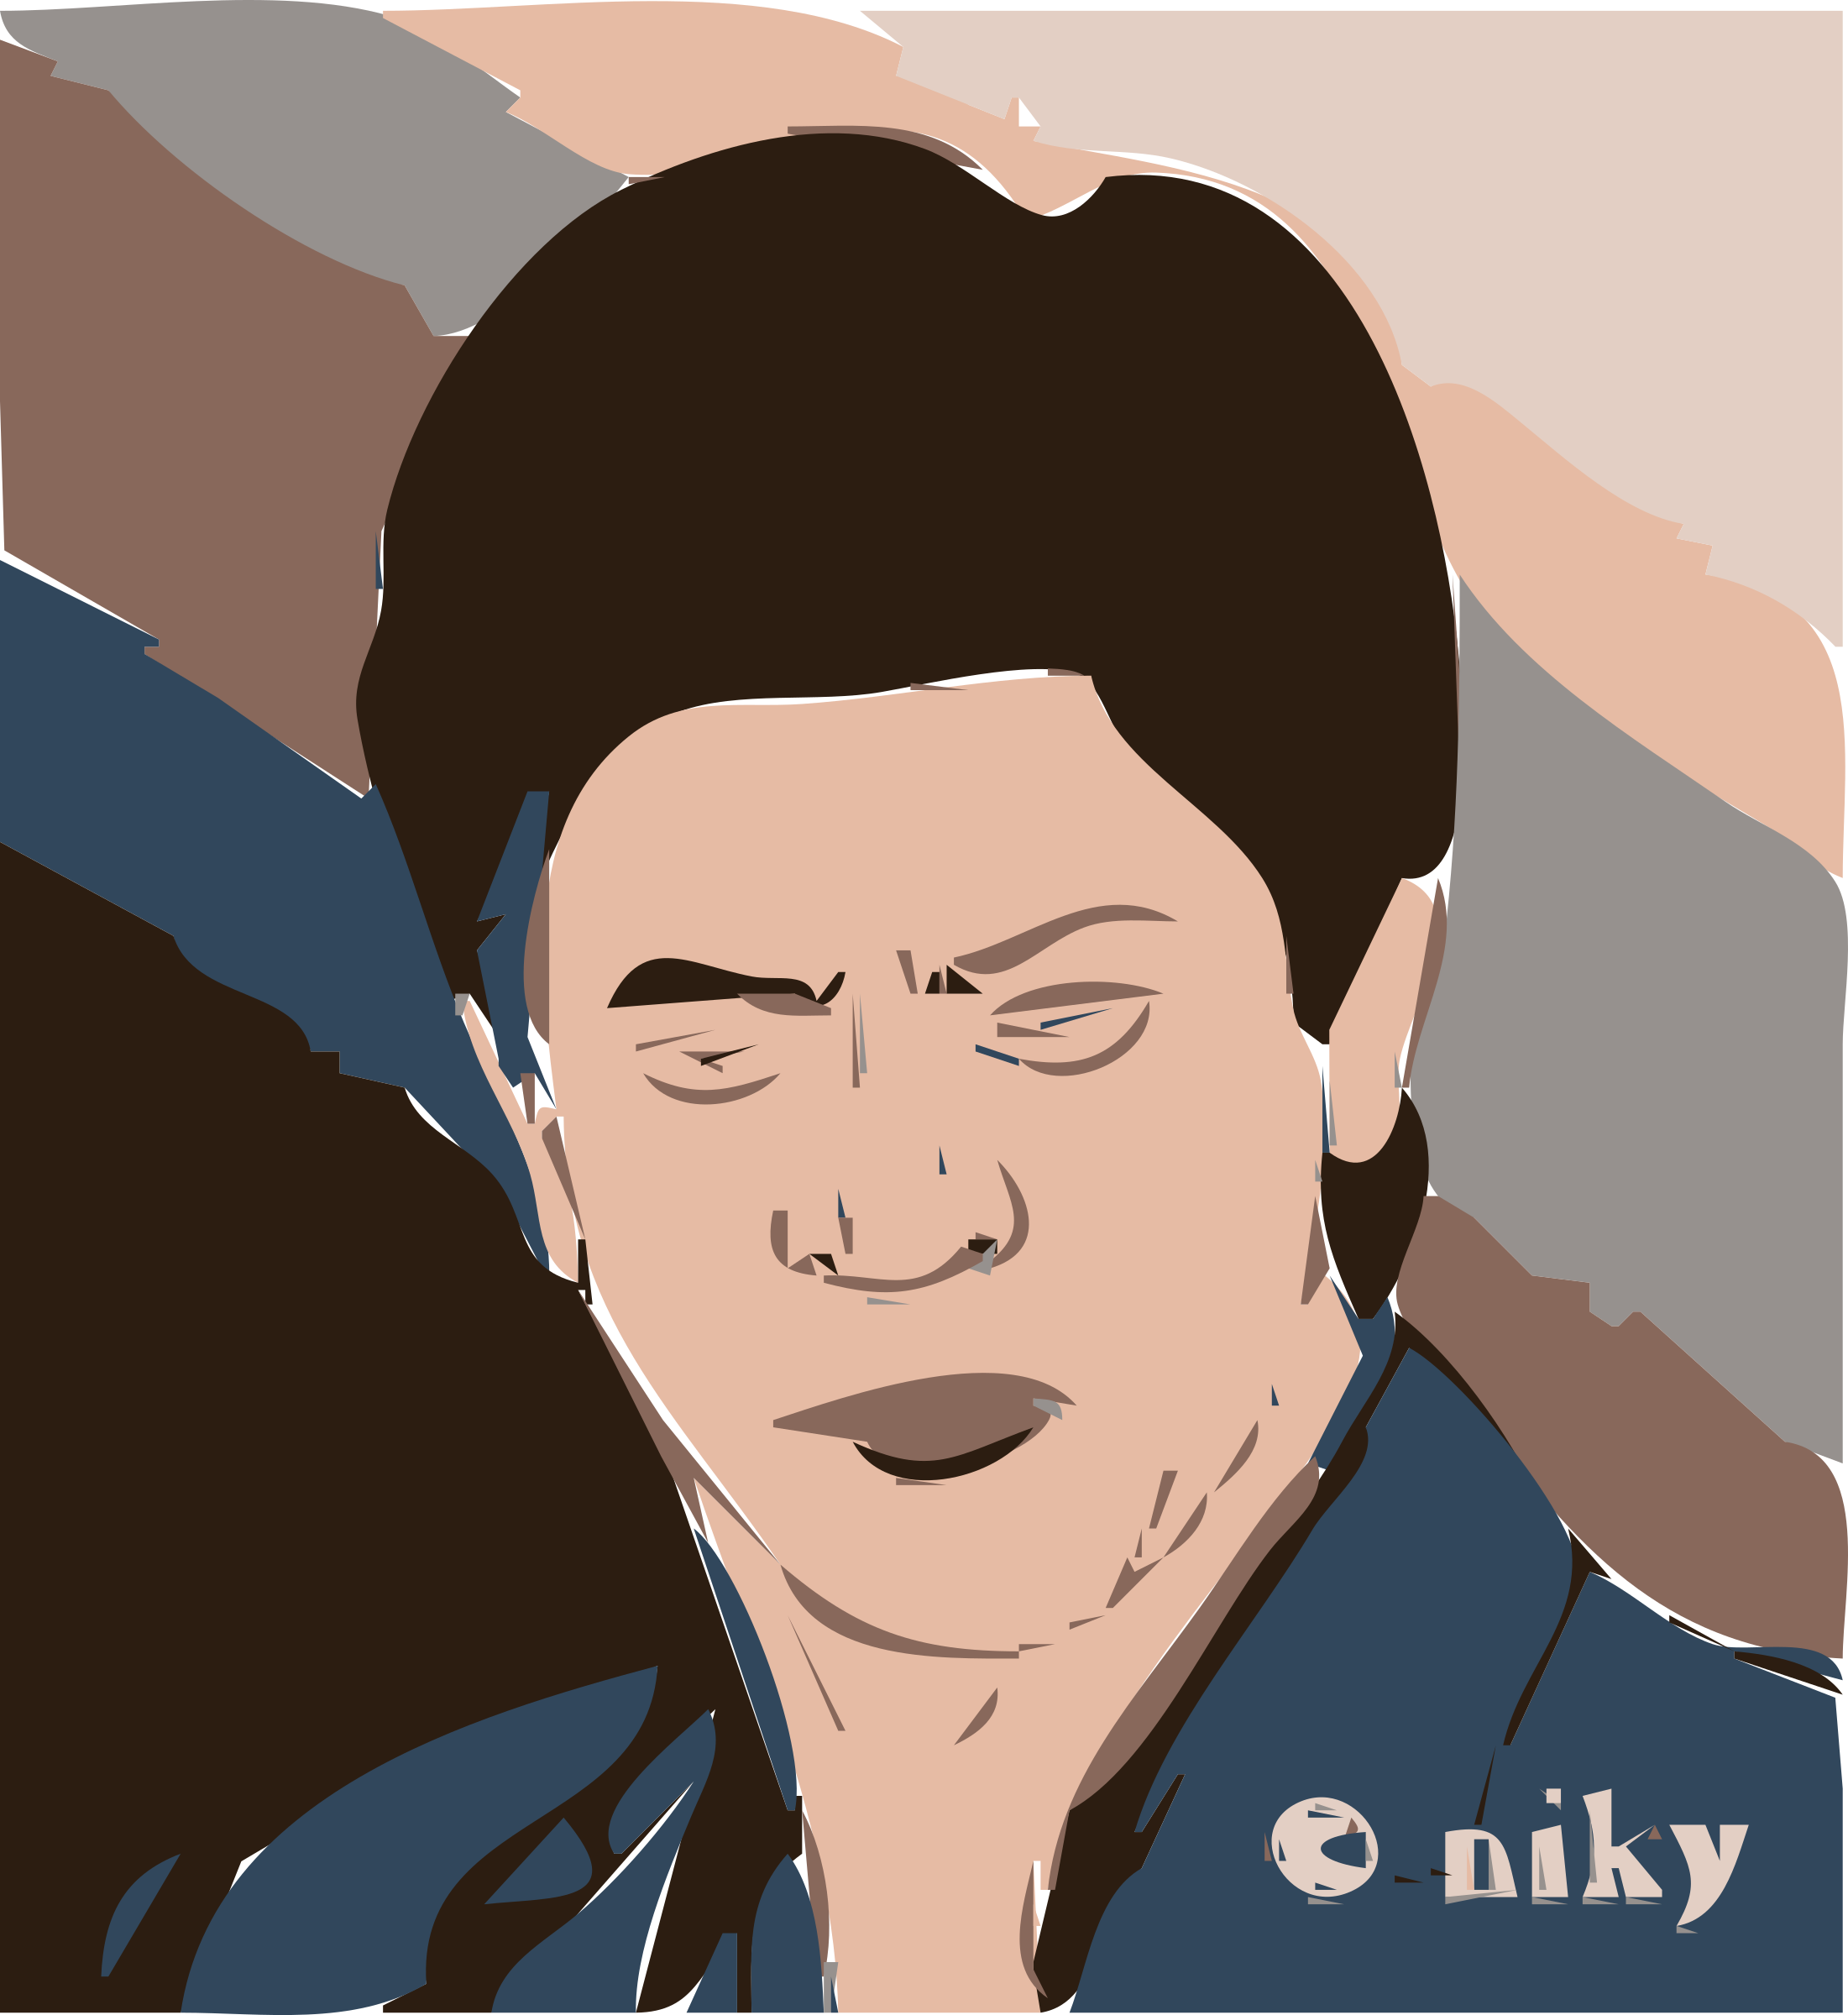 Shahrukh khan by Niky